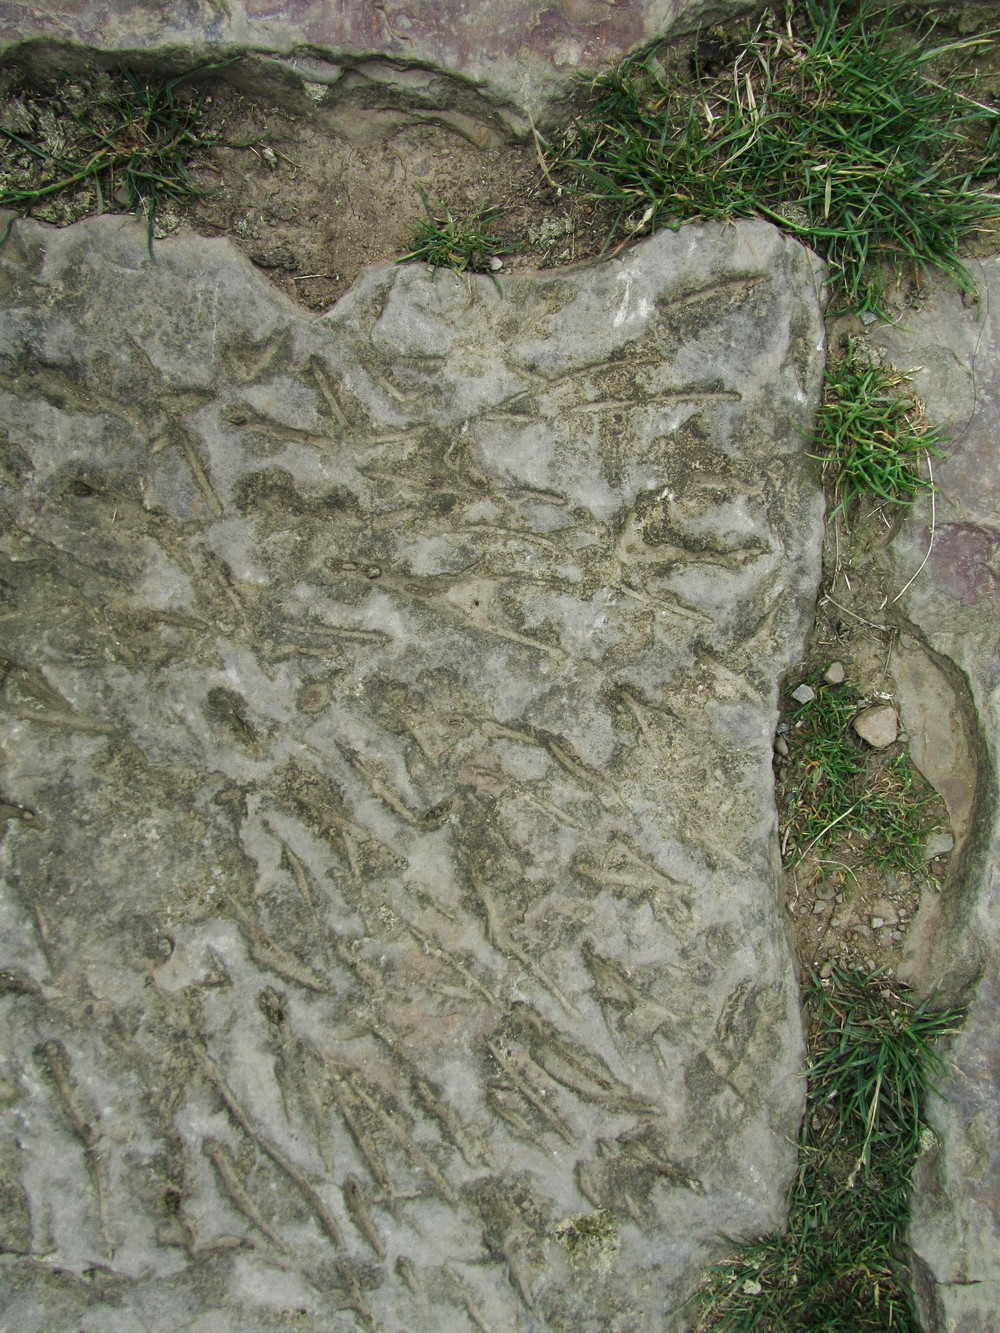 castleton paving slabs.JPG